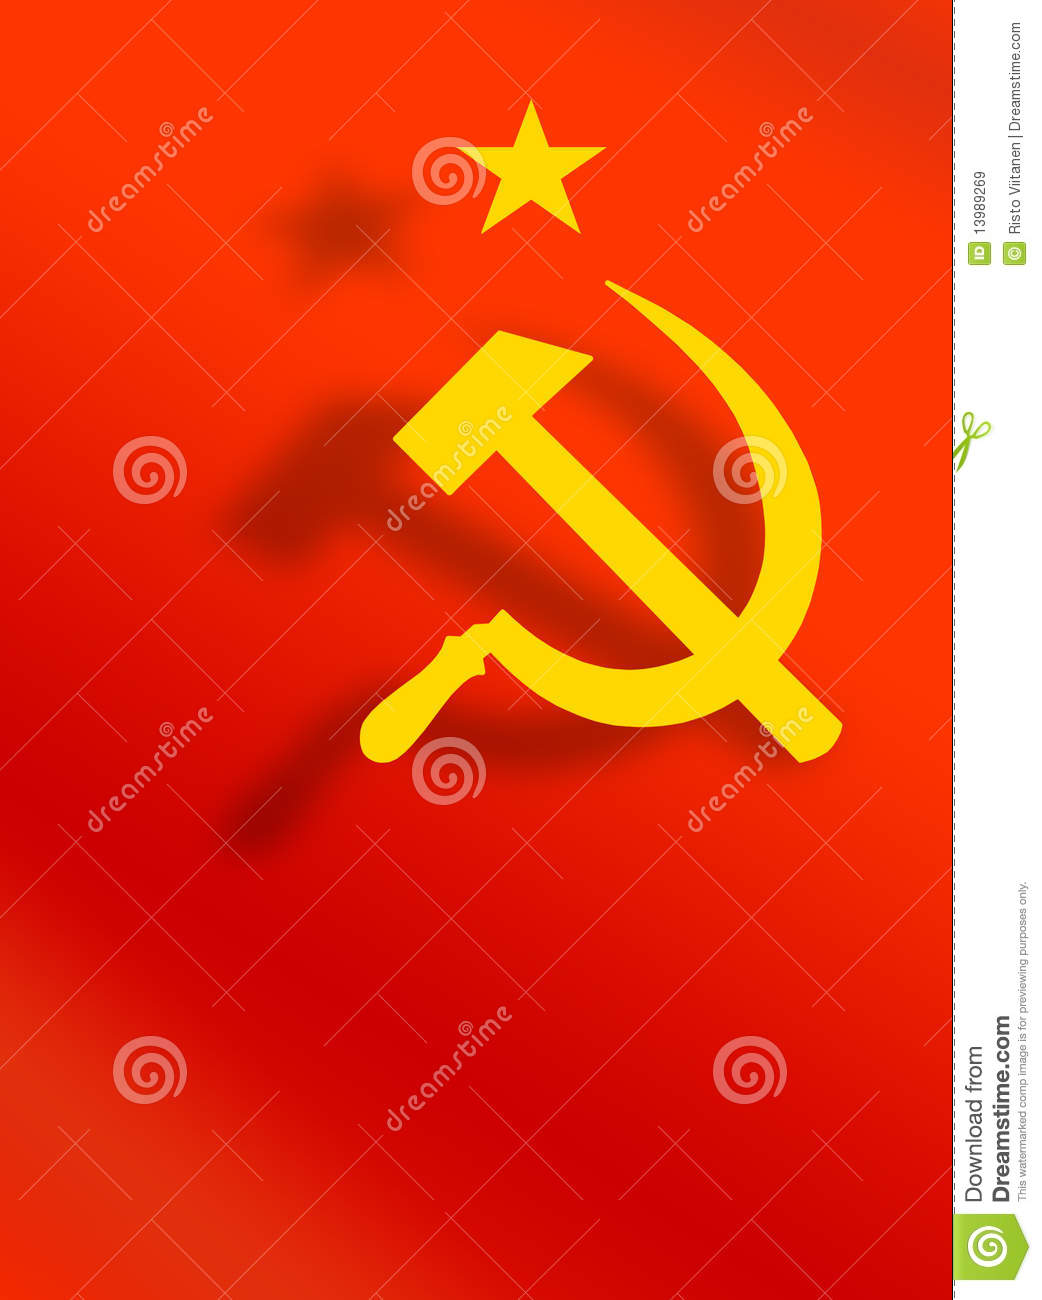 Ussr cccp symbol hammer and sickle stock illustration ussr cccp symbol hammer and sickle biocorpaavc Gallery